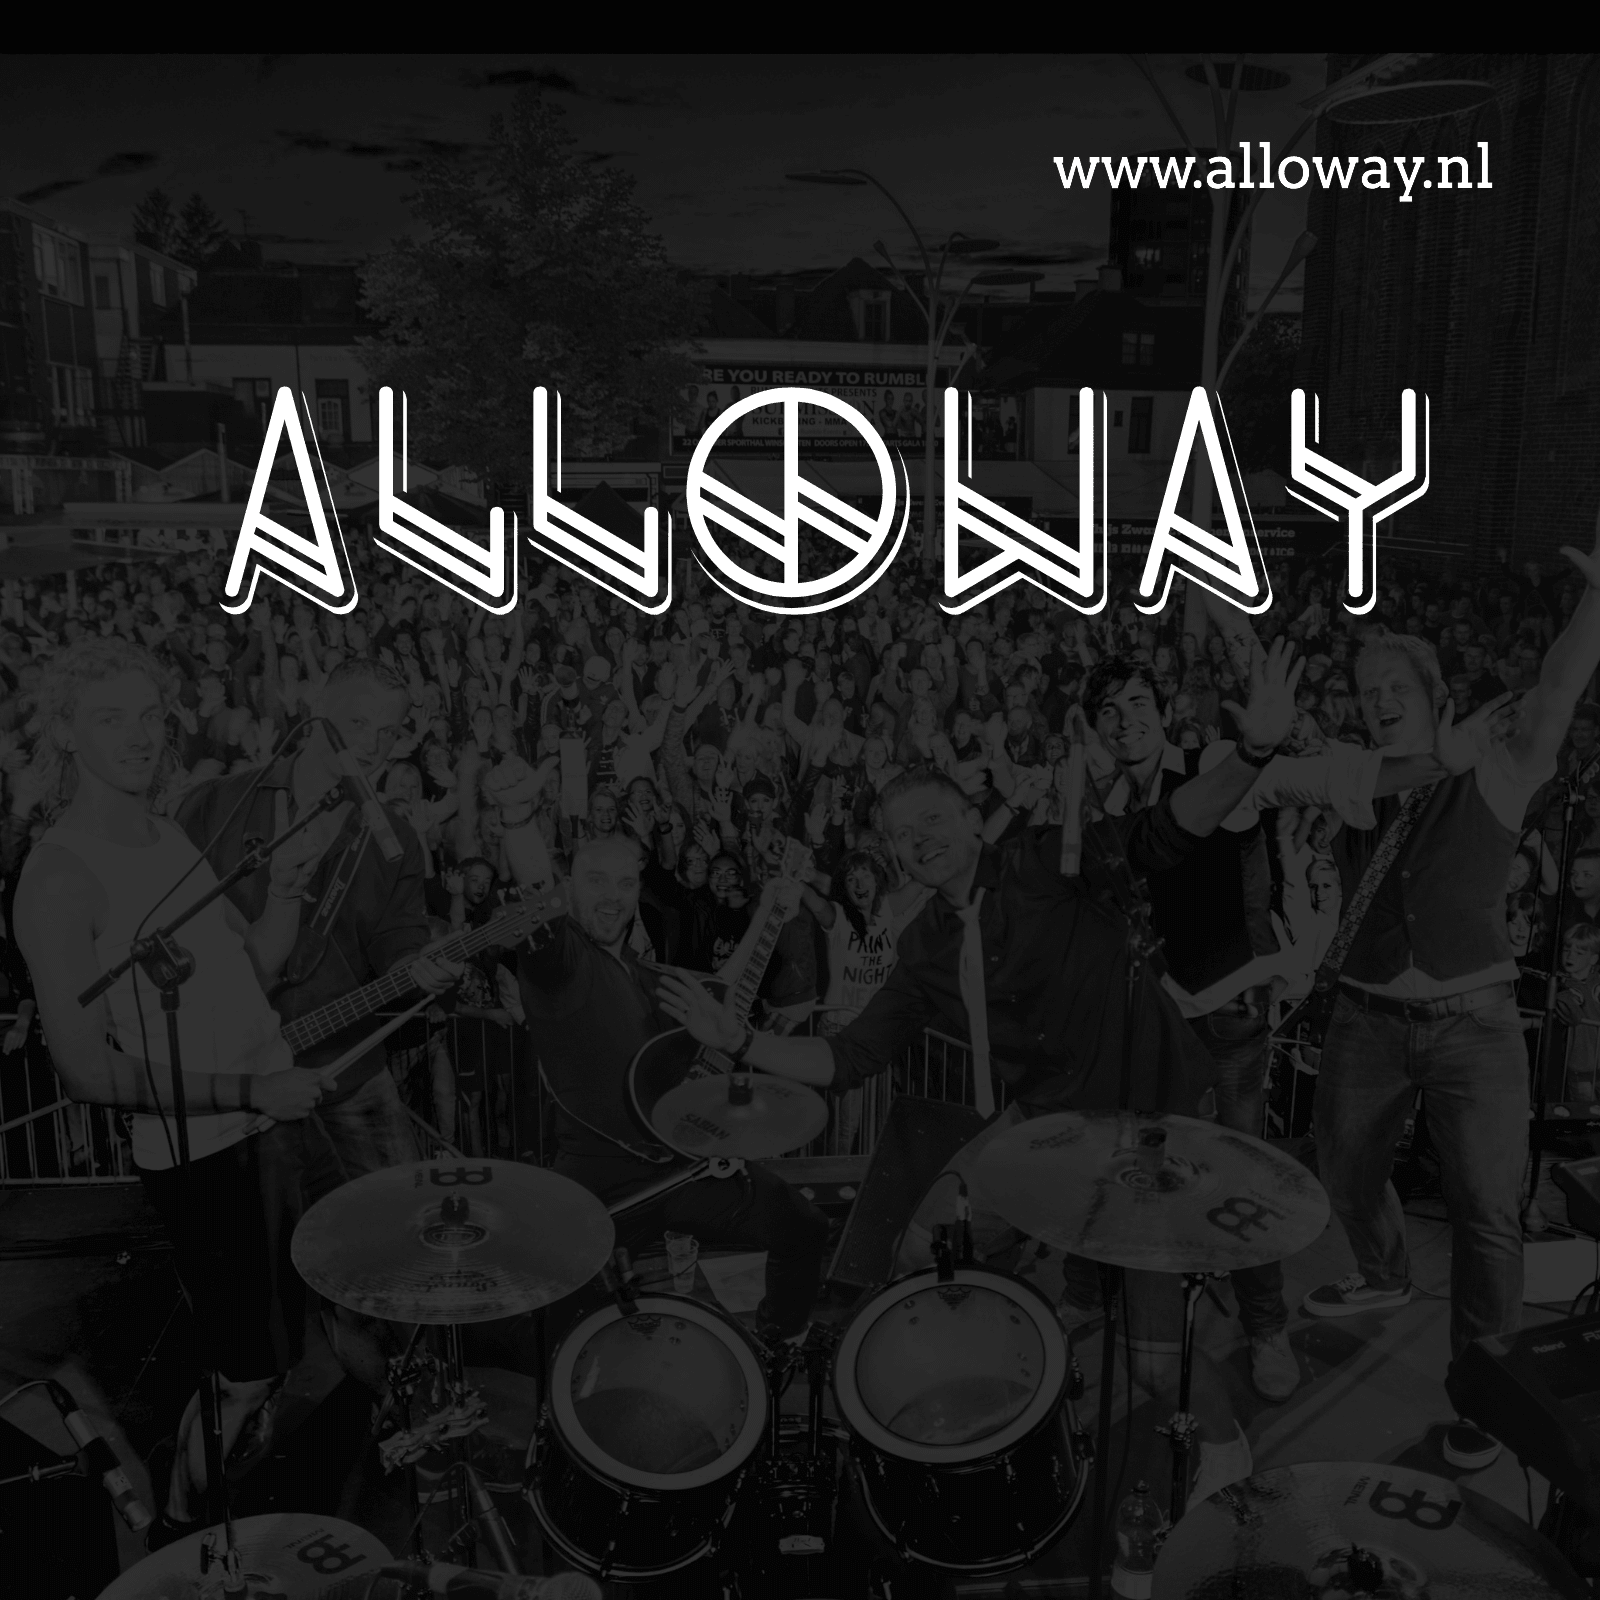 Drum,                Black,                Drums,                Drummer,                Text,                And,                White,                Percussion,                Monochrome,                Photography,                Font,                Darkness,                 Free Image